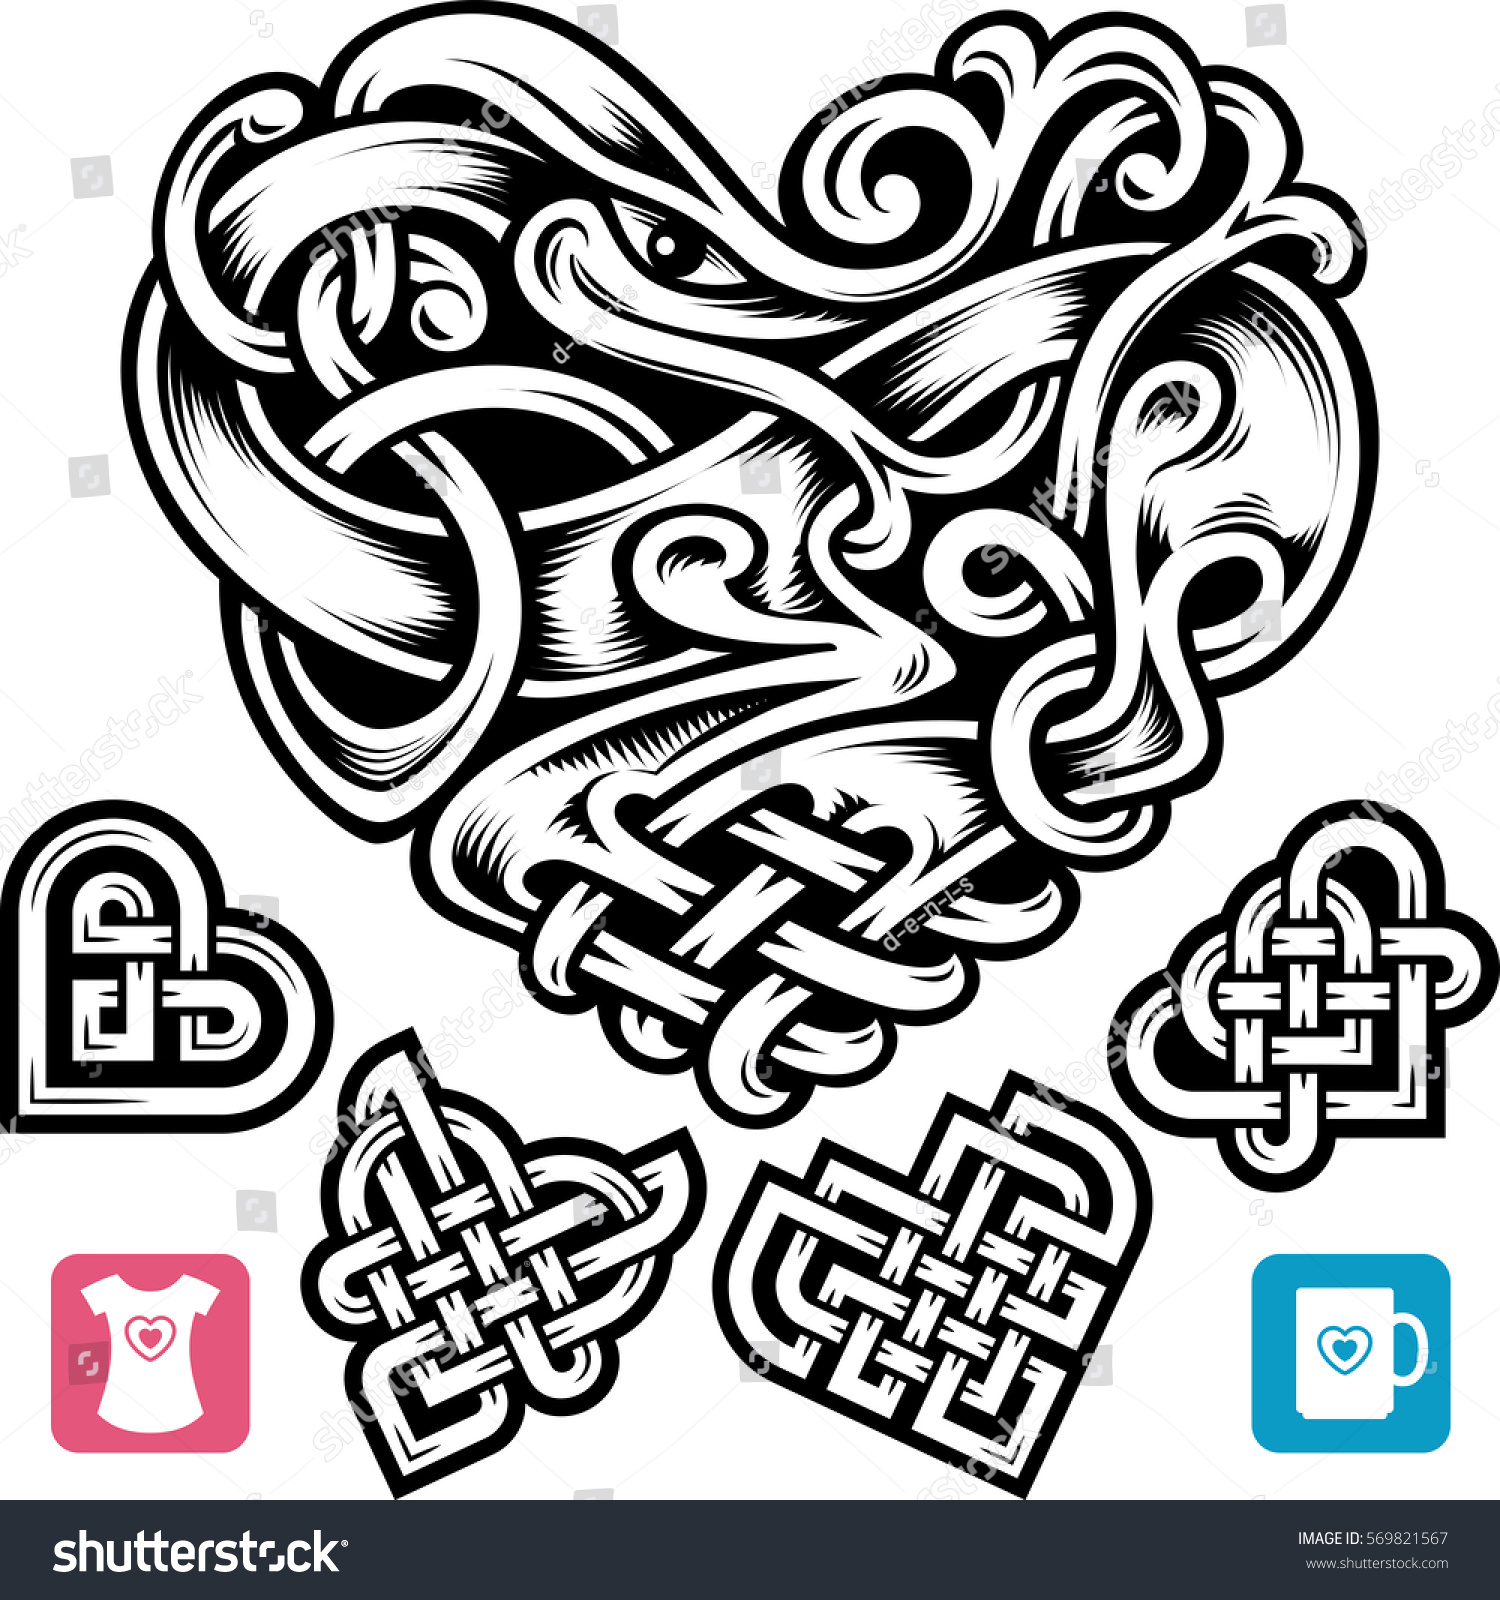 Vector celtic heart set cute small stock vector 569821567 vector celtic heart set cute small irish tattoo or romantic symbol in the medieval design buycottarizona Choice Image